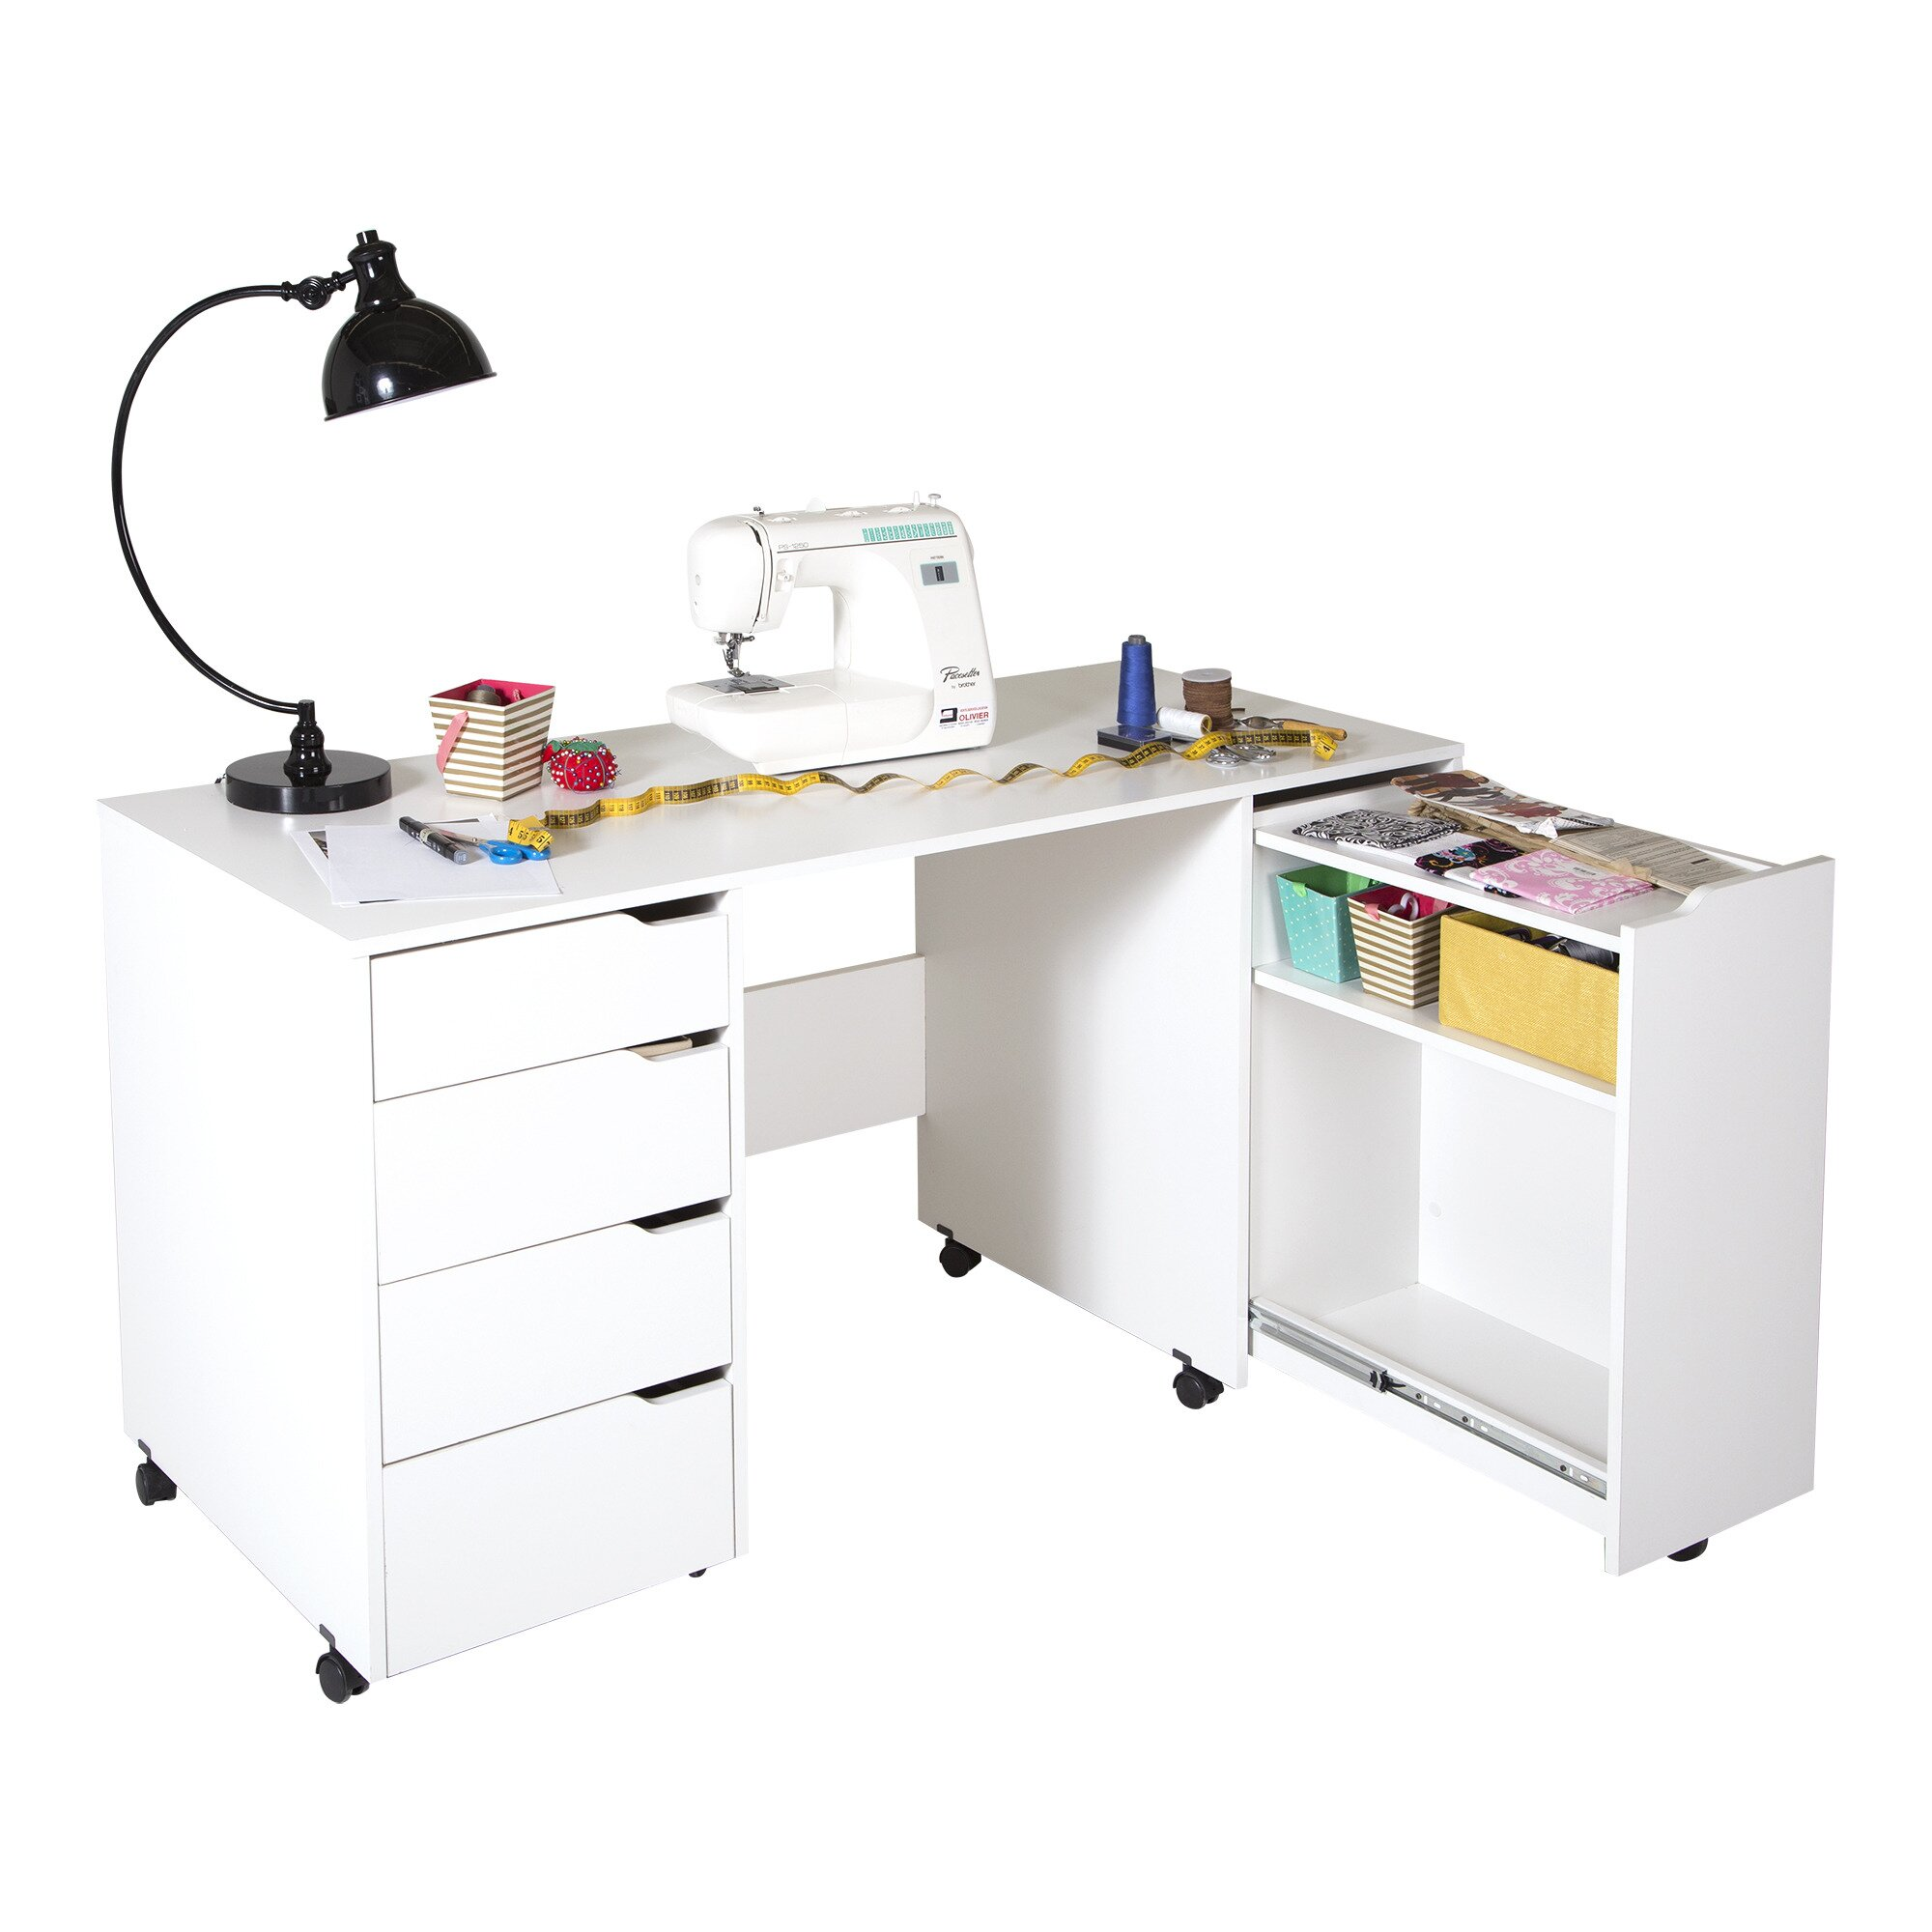 South Shore Crea 5813quot W x 2363quot D Sewing Table  : Crea581322Wx236322DSewingTable from www.wayfair.ca size 2000 x 2000 jpeg 199kB